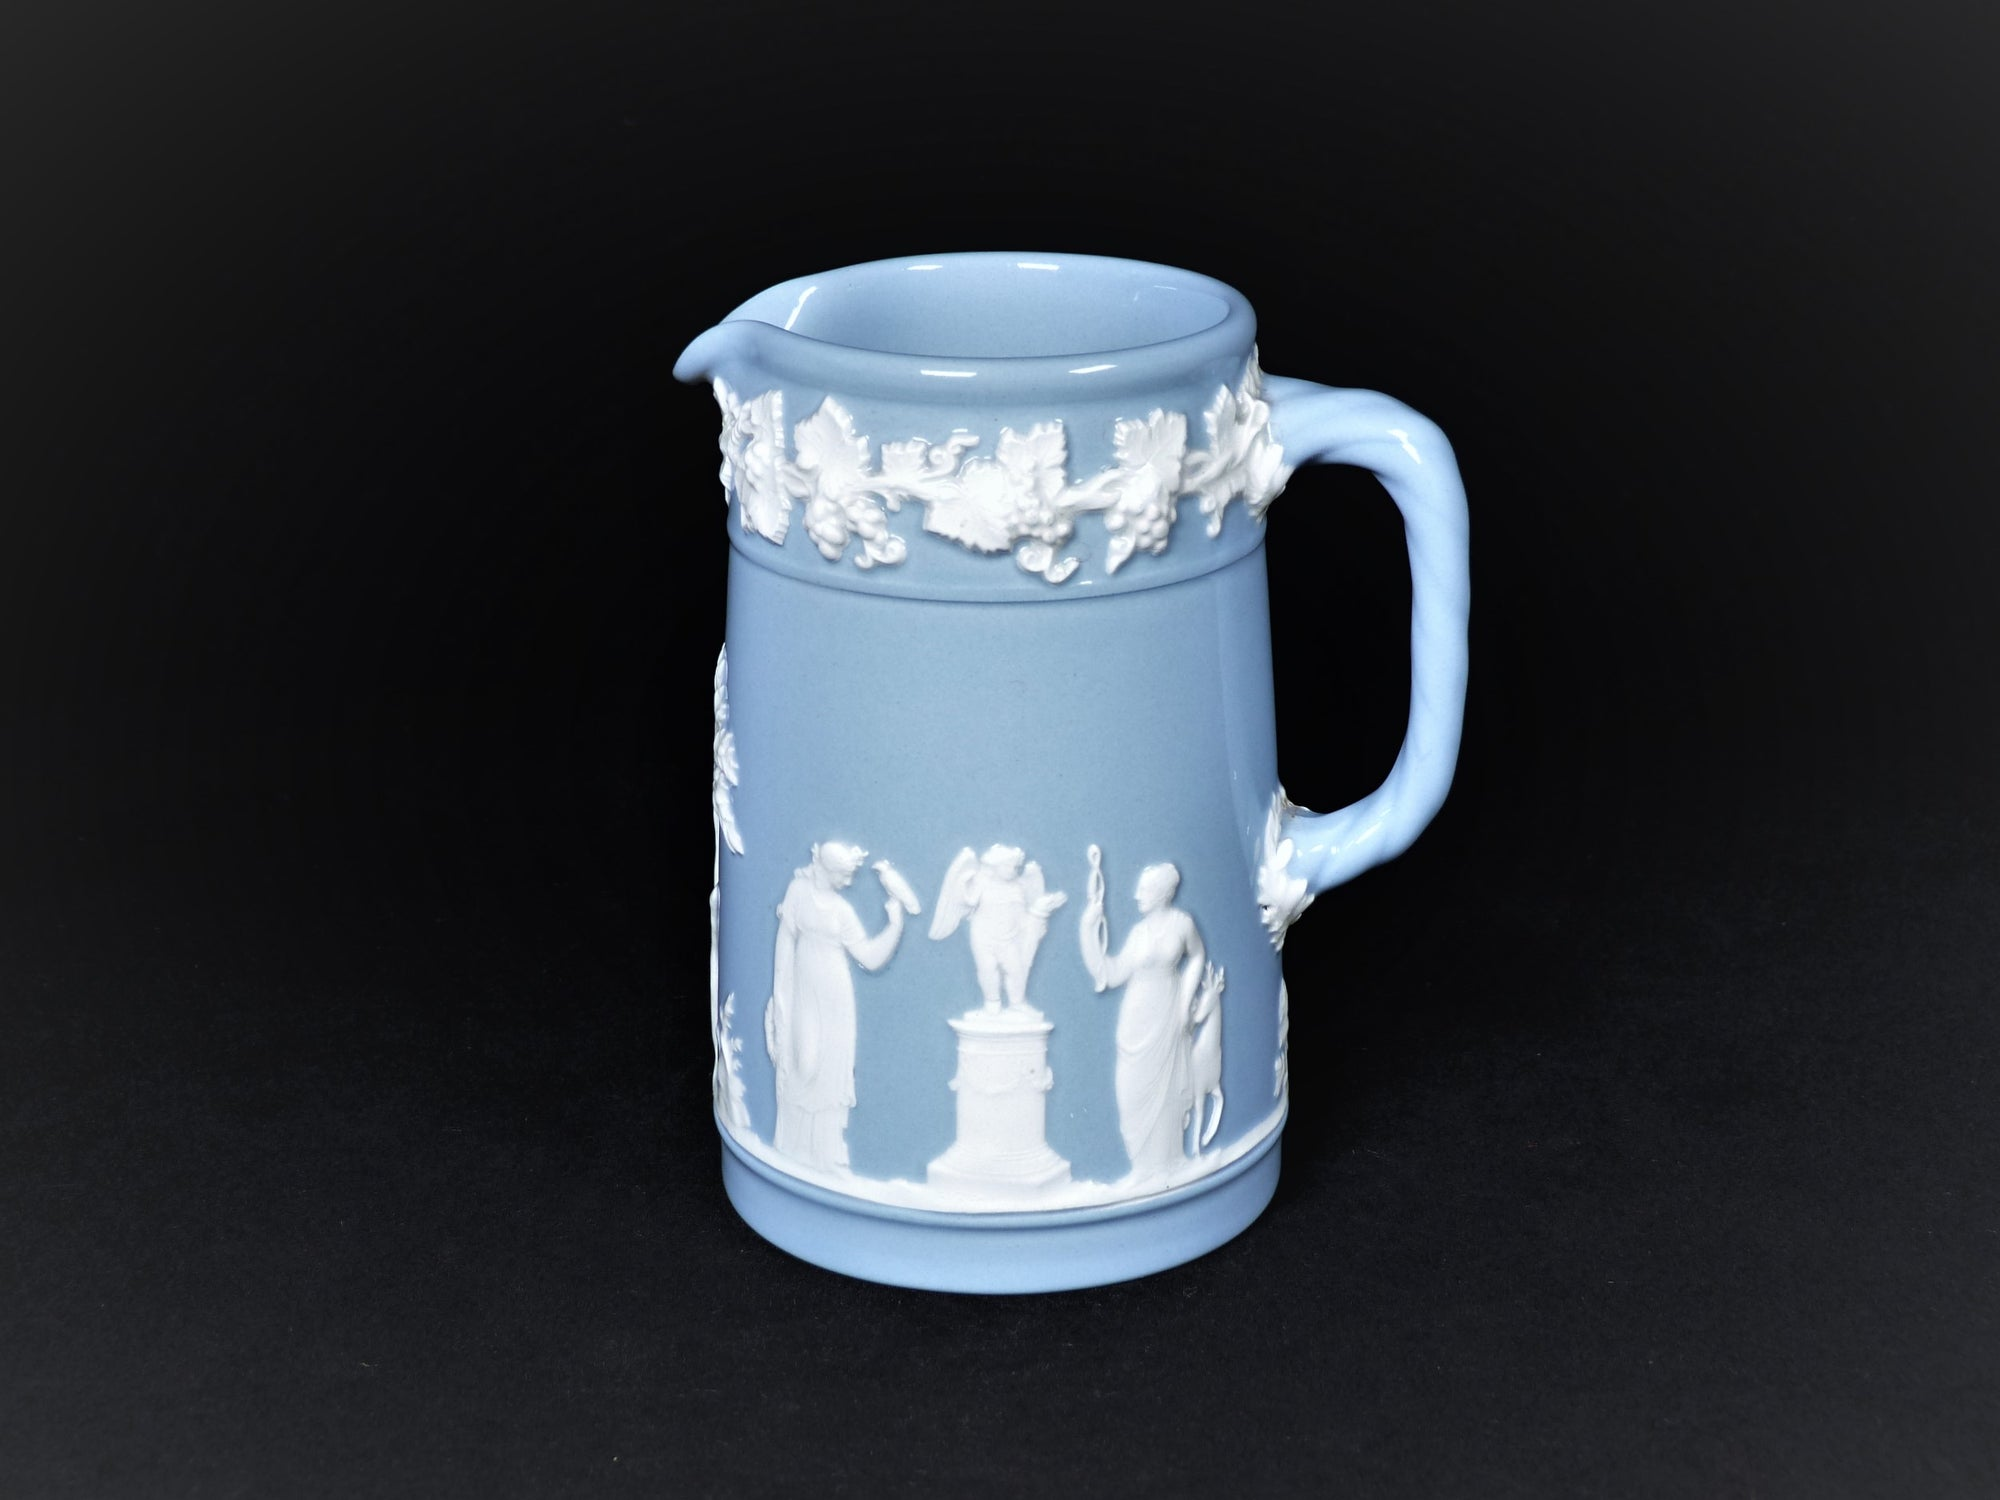 Wedgwood Queen's Ware Blue Small Jug